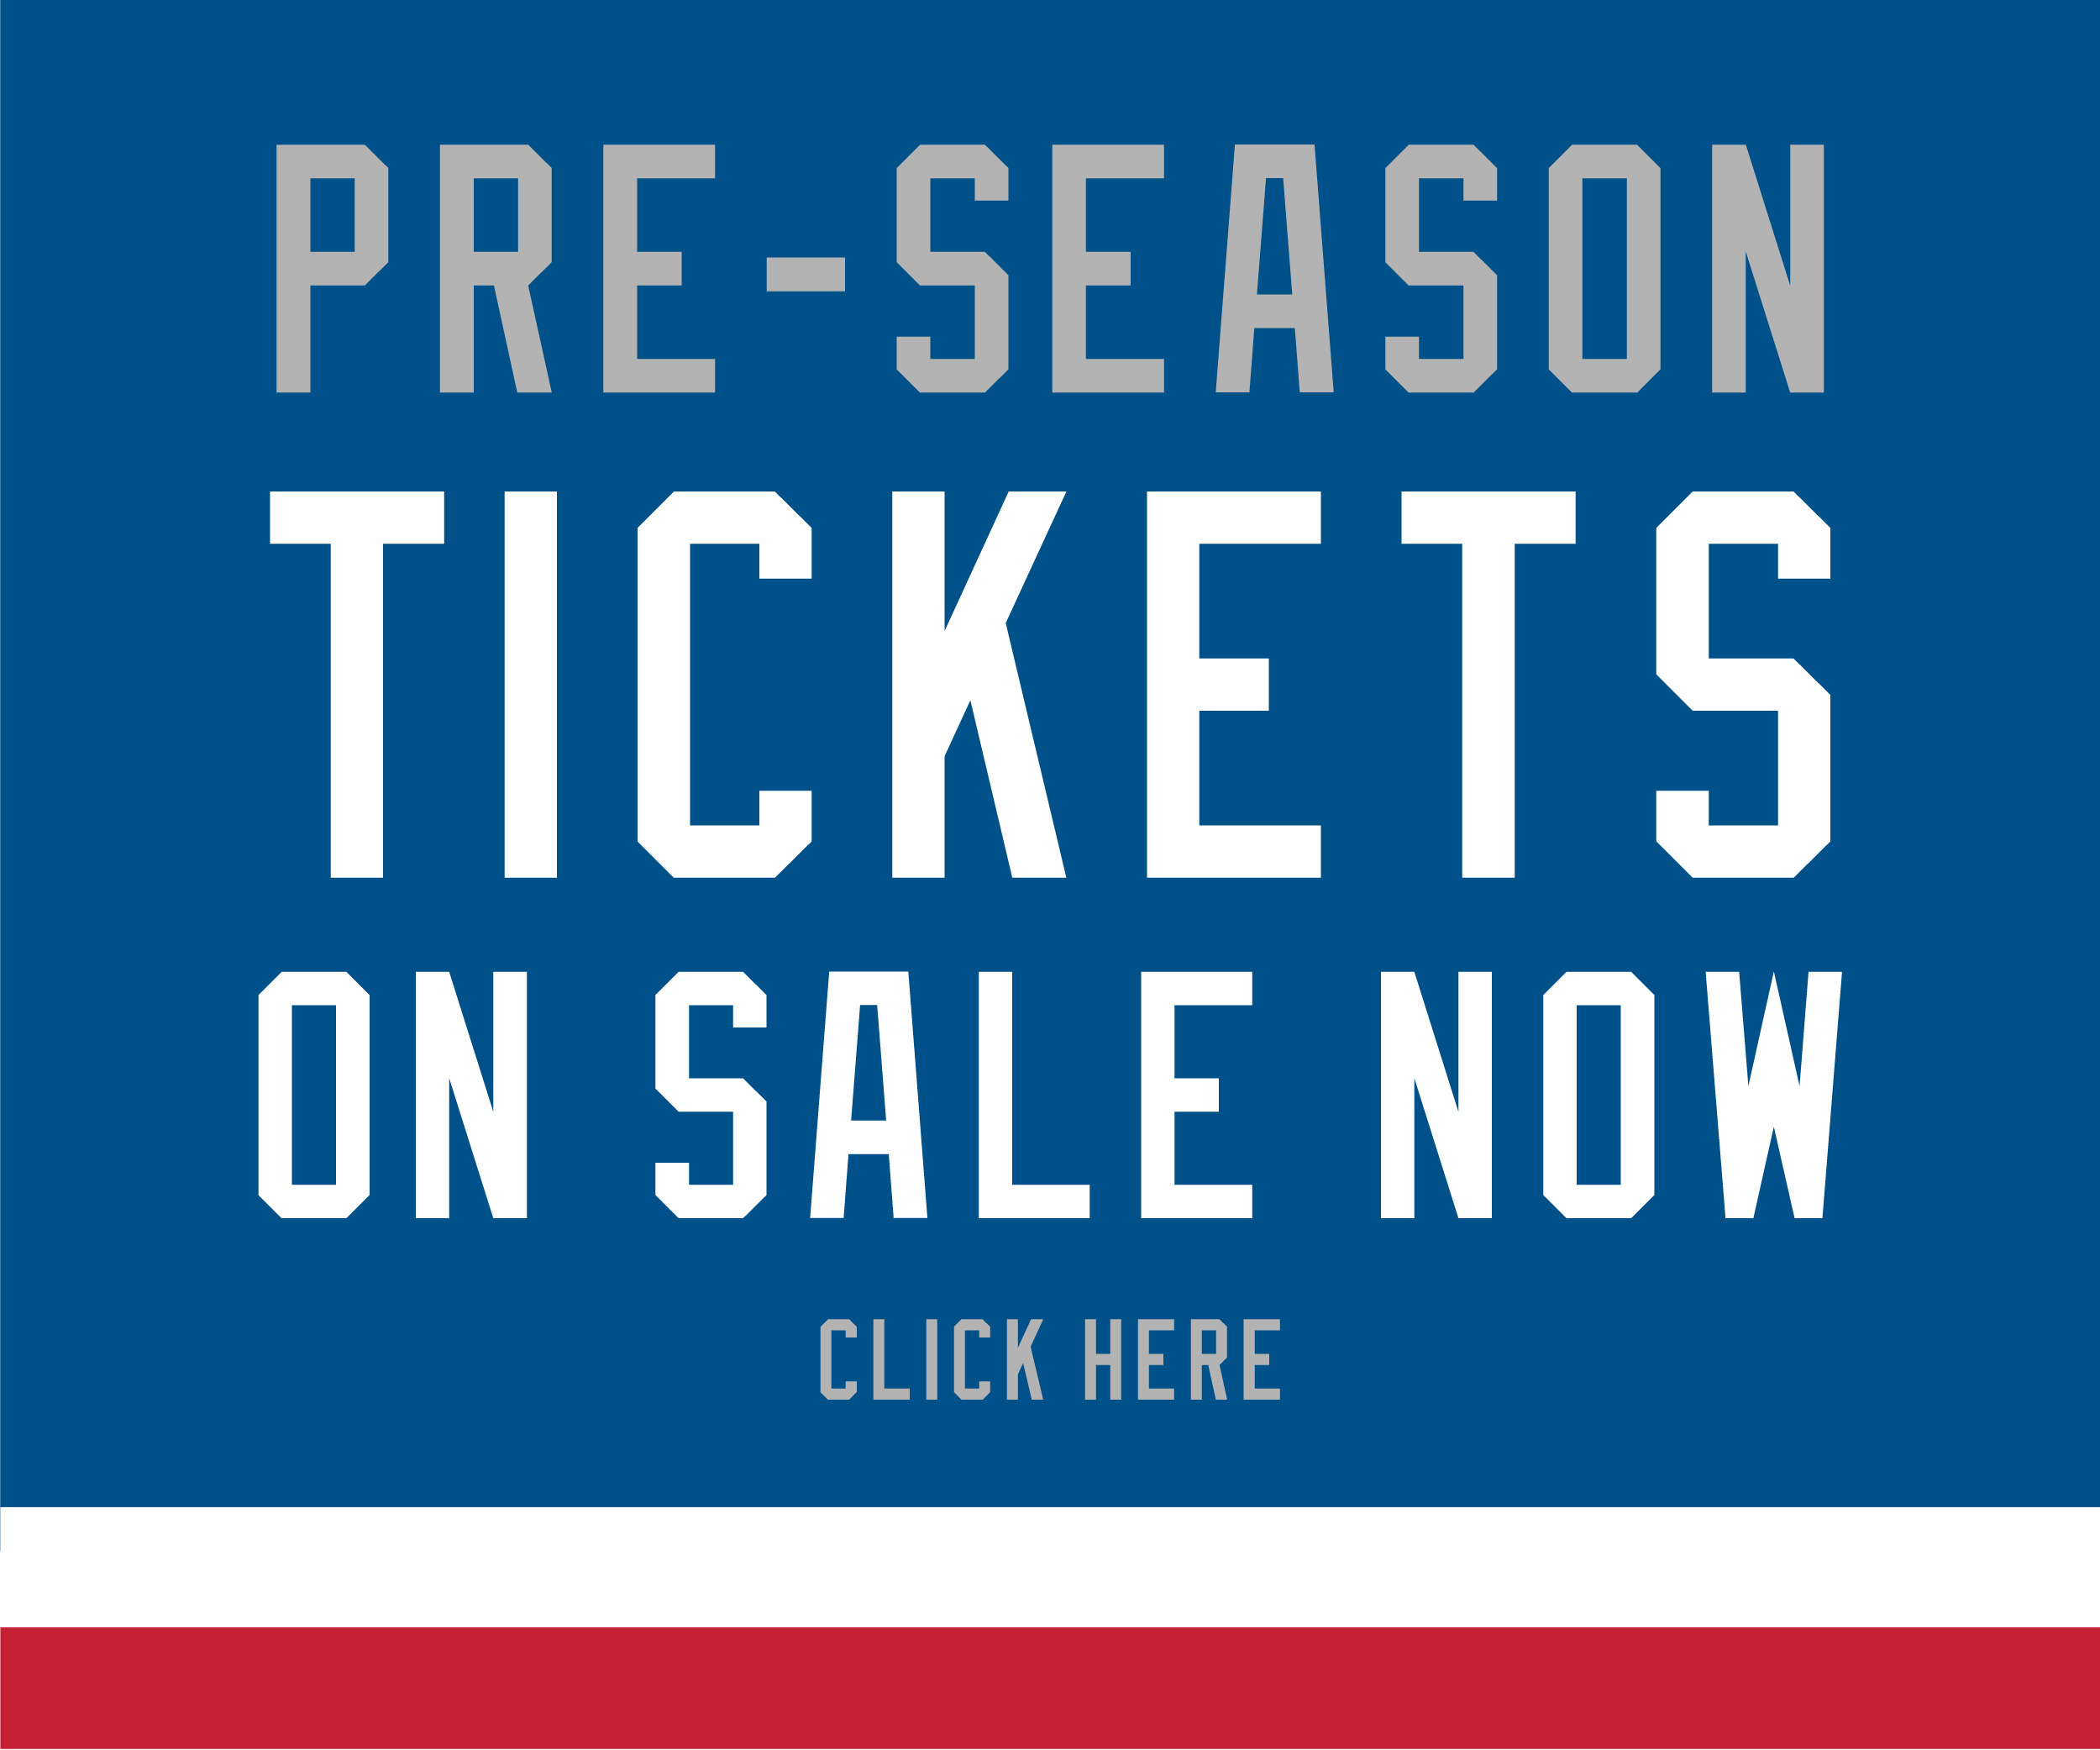 Preseason Individual Tickets on Sale Now